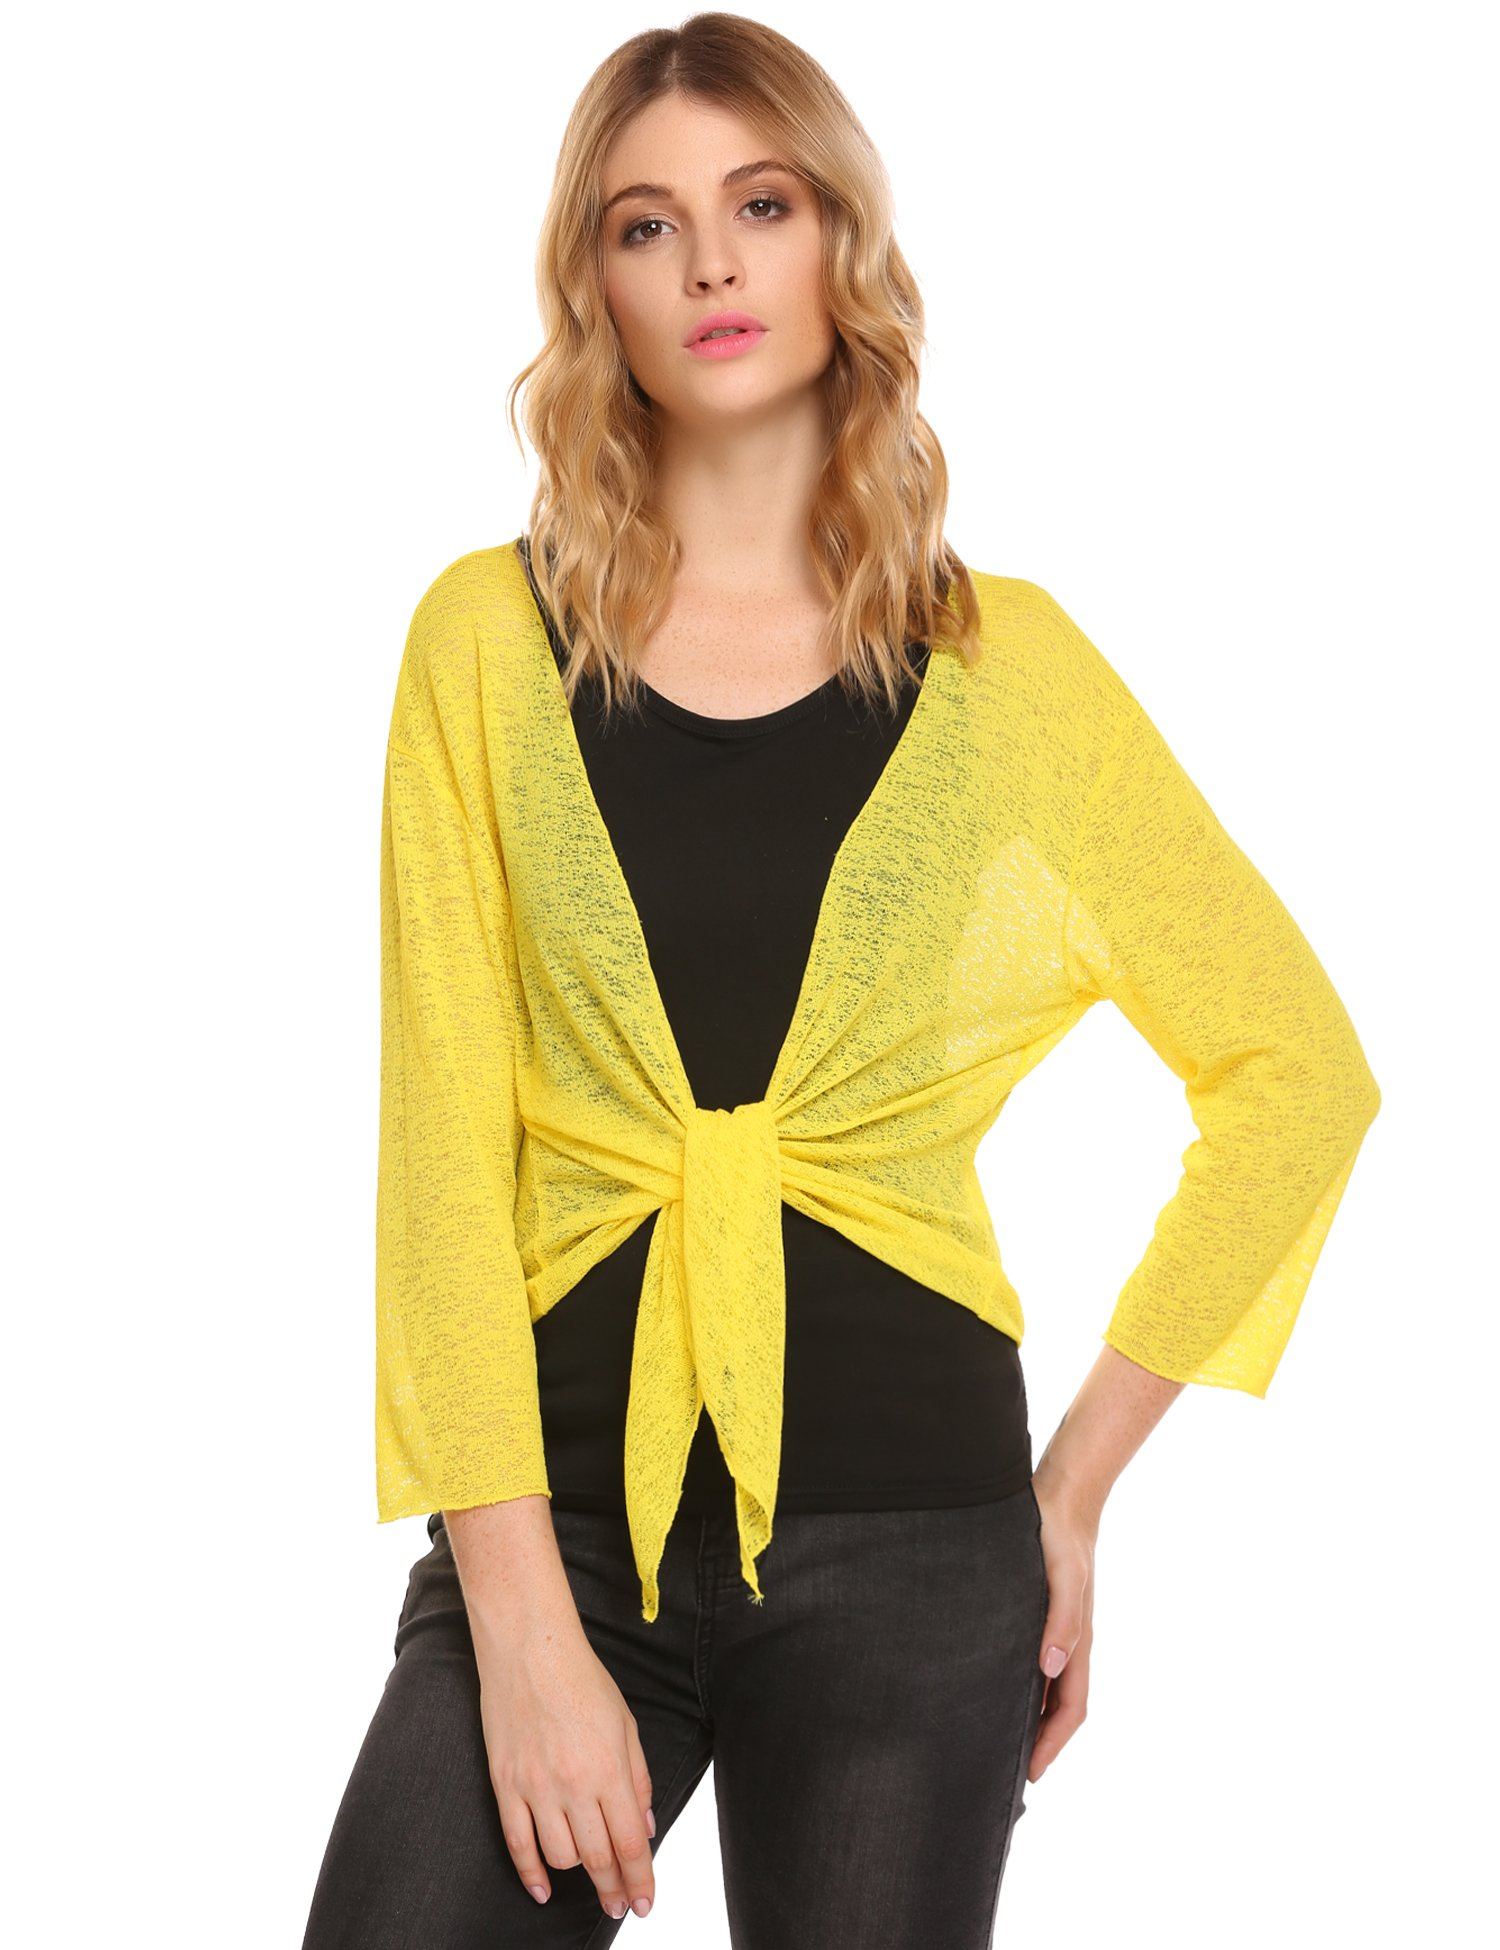 Beyove Women's Front Tie Beach Swimsuit Cover Up Shrug Knit Open Cardigan, X-Large, E Yellow